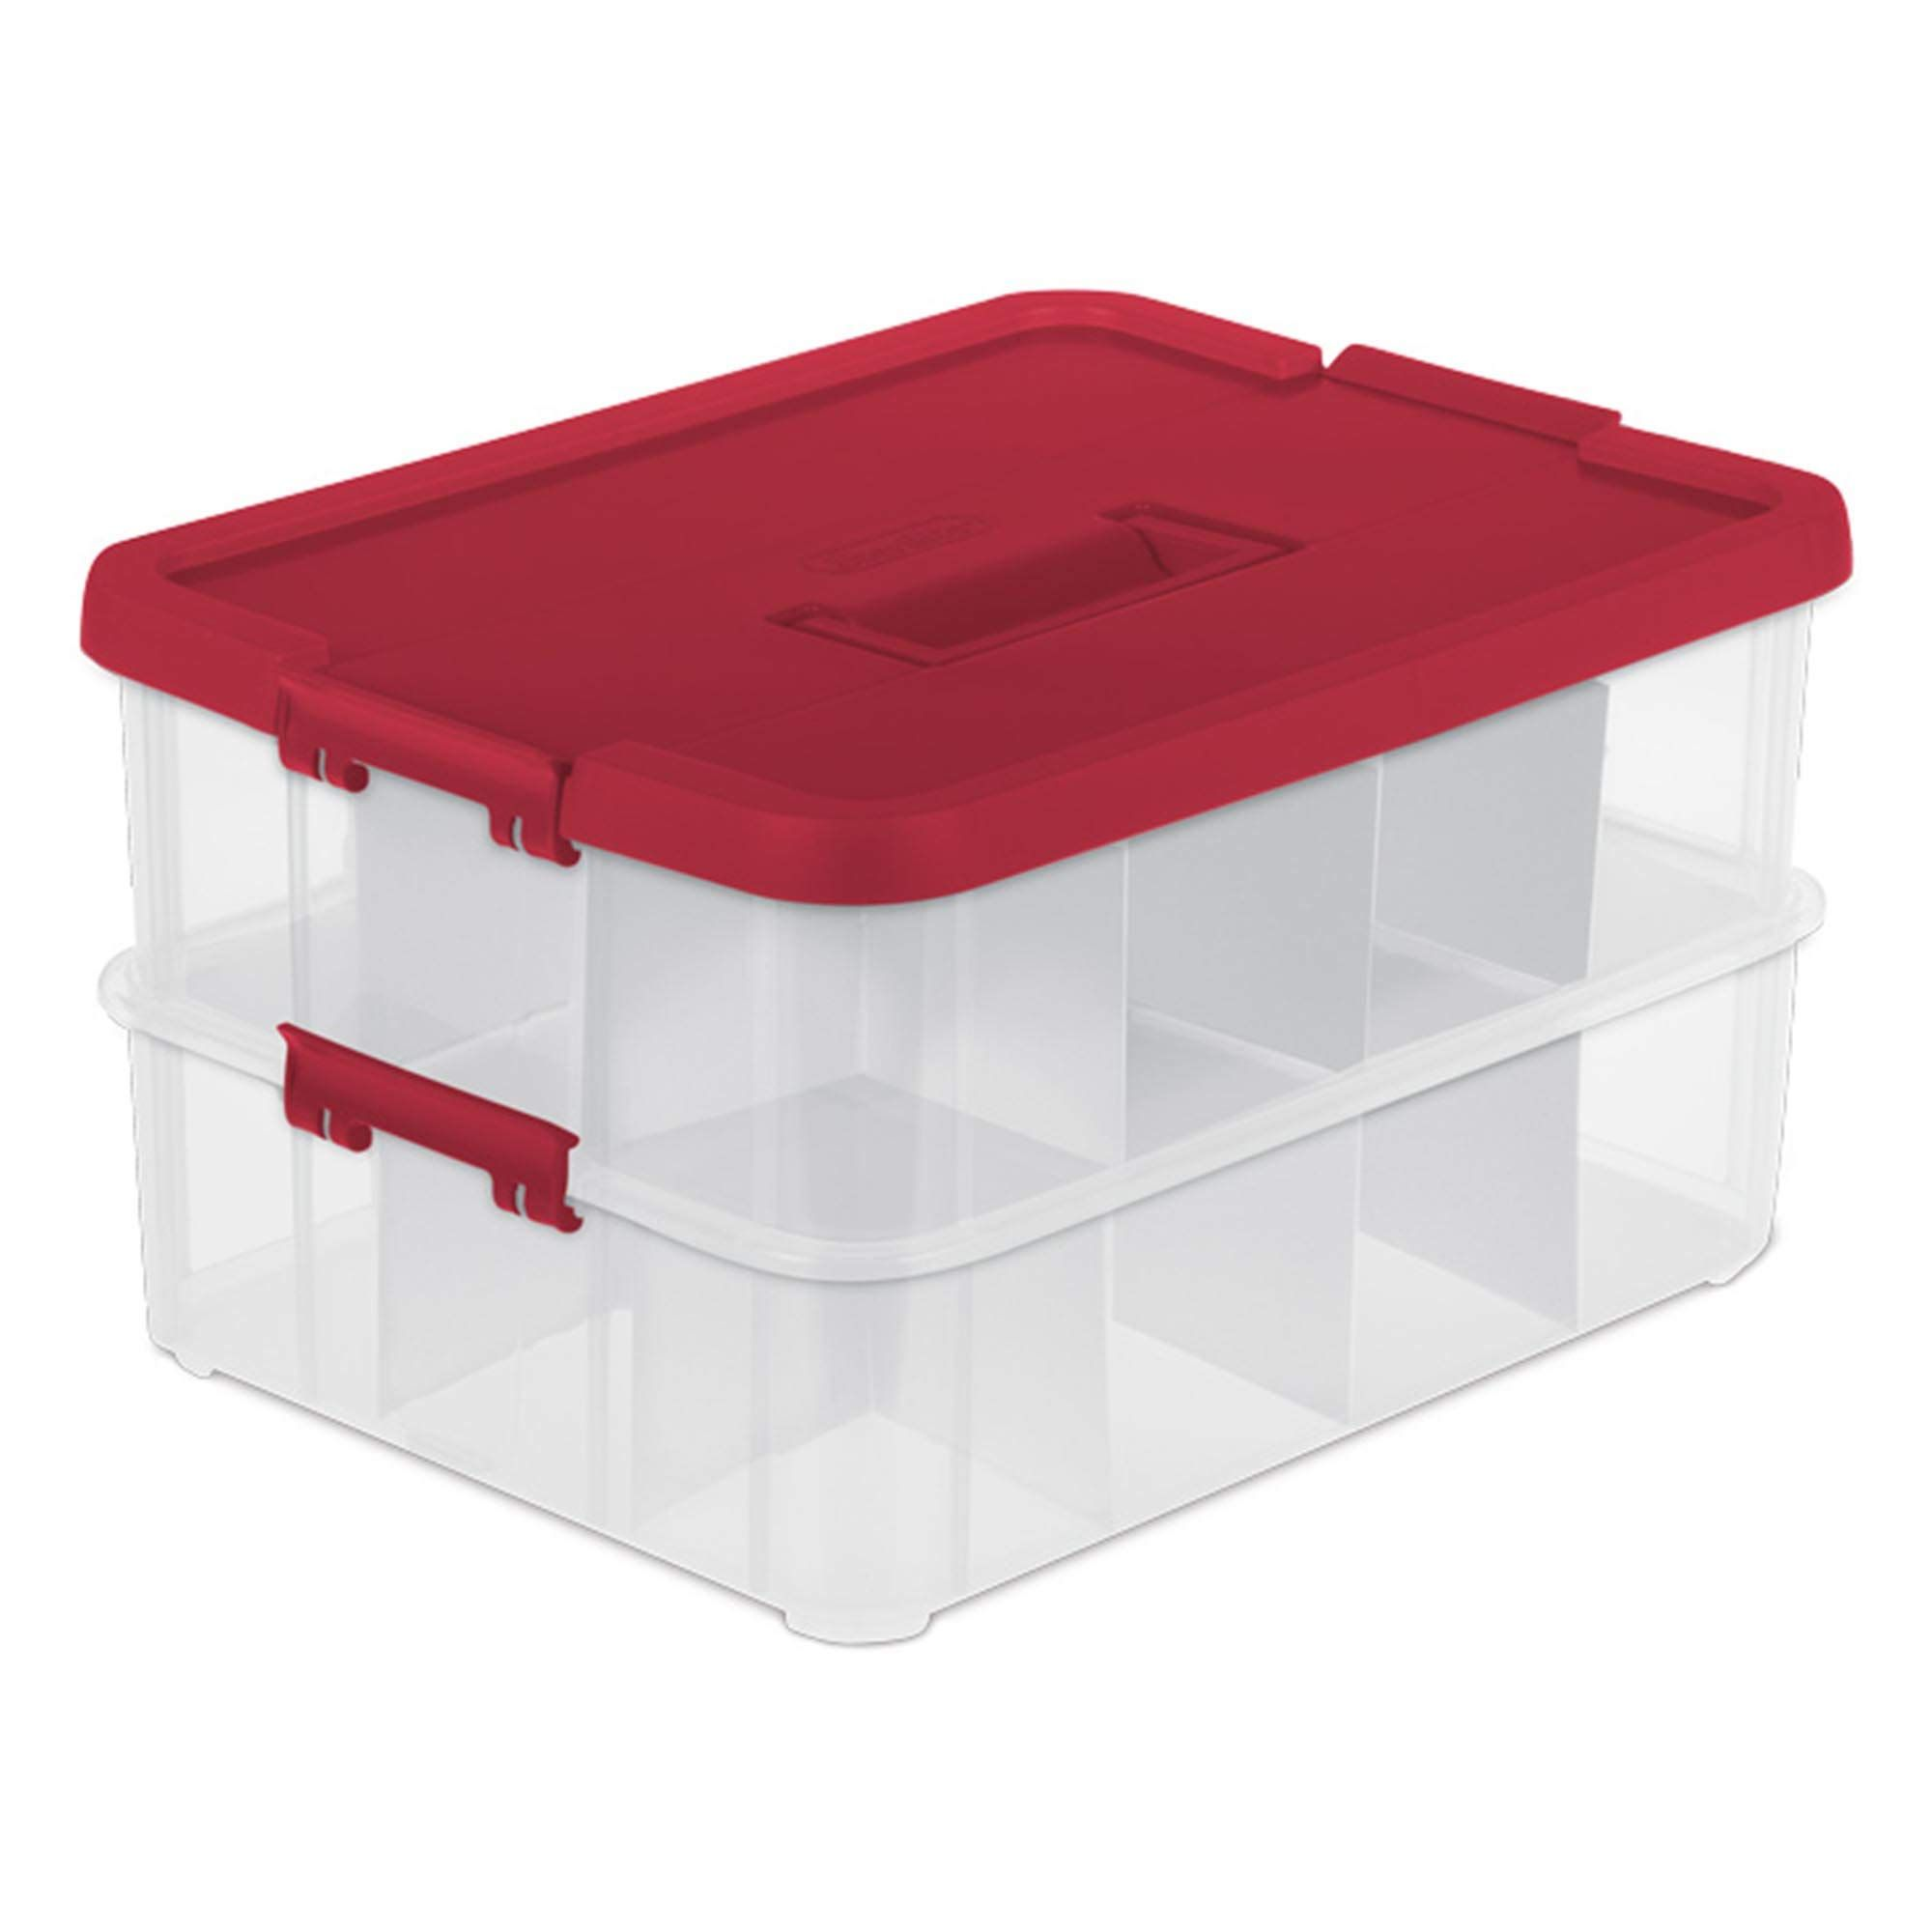 Sterilite 1427 Stack And Carry 2 Layer 24 Ornament Storage Box More Info Could Be Found At The In 2020 Ornament Storage Ornament Storage Box Storage Tubs